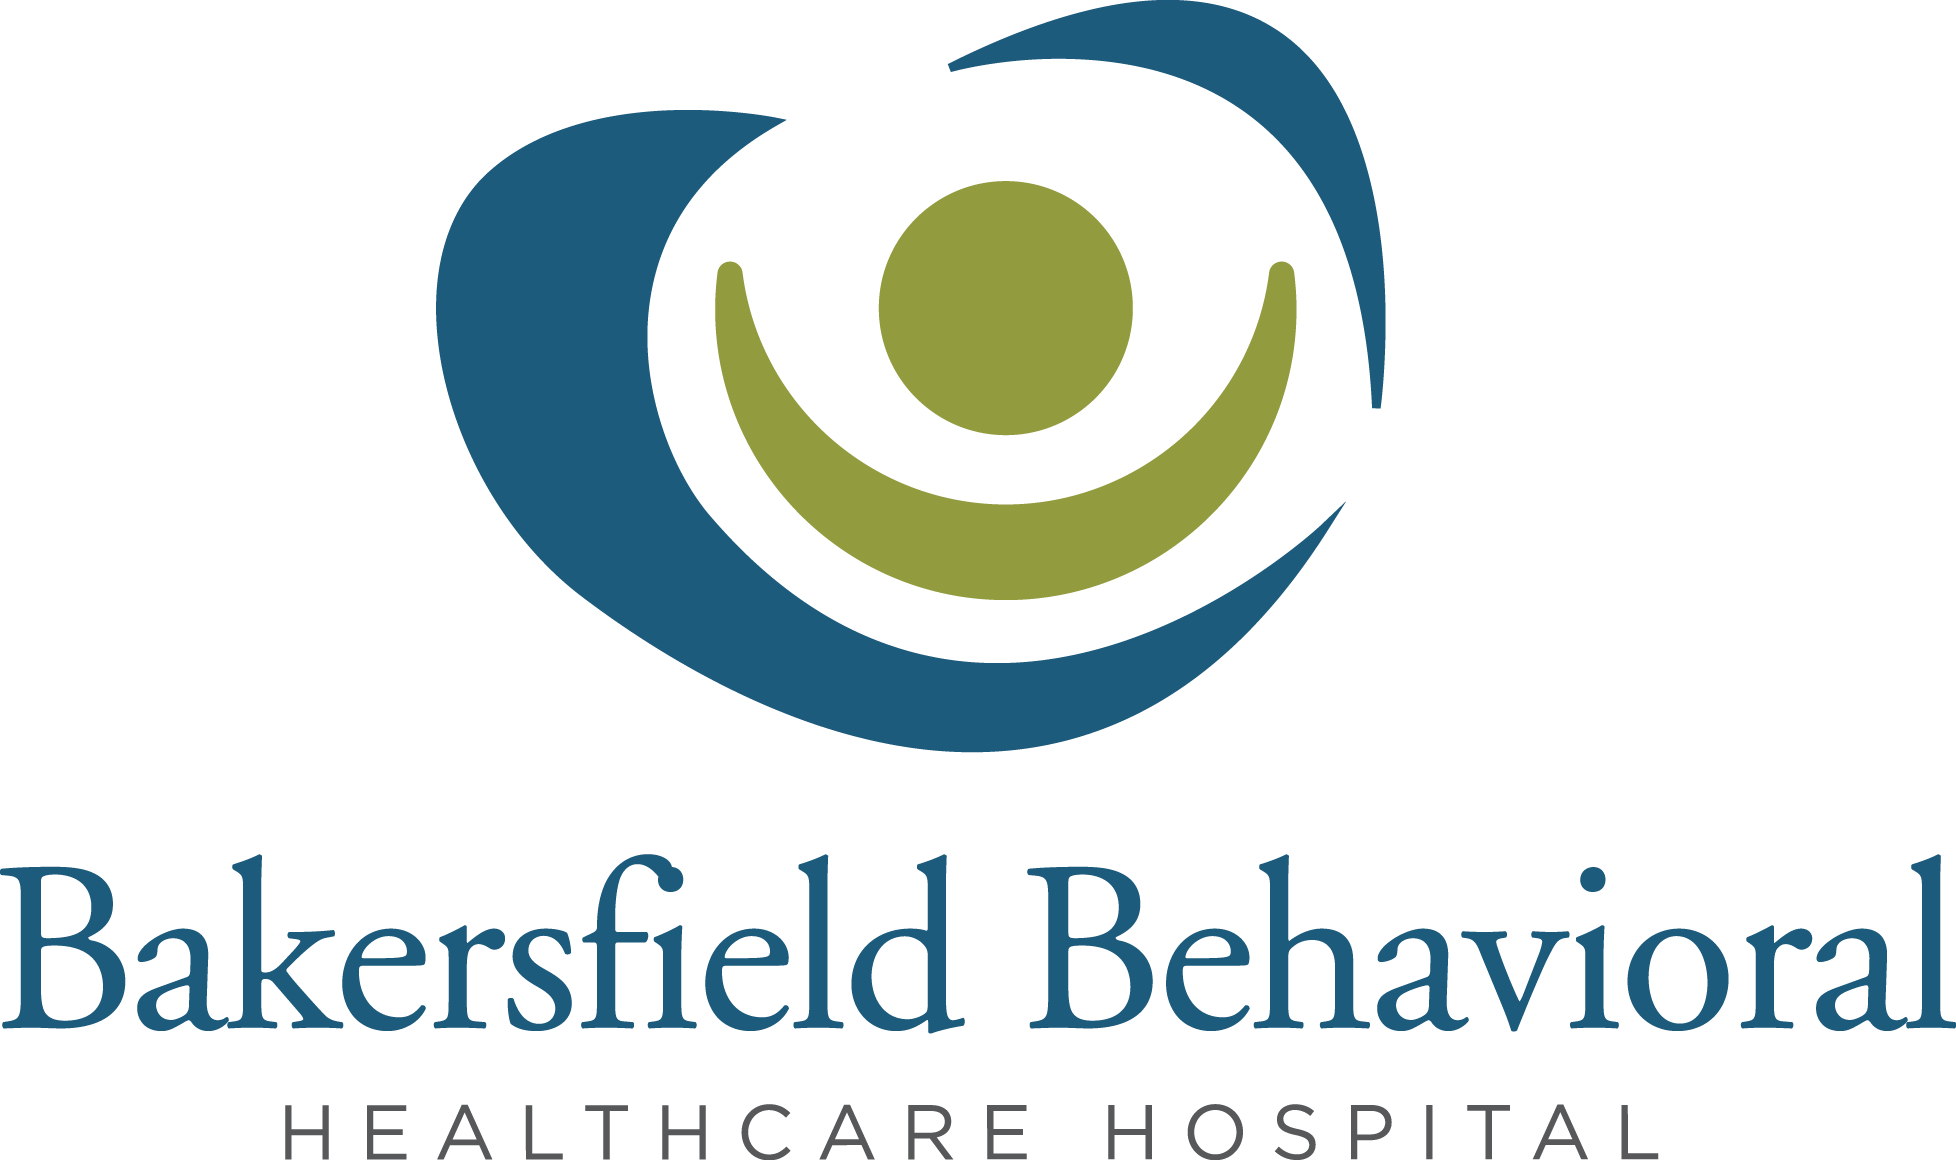 Bronze_BakersfieldBehavioralHealthcareHospital_Logo_Final_PMS - Copy.png